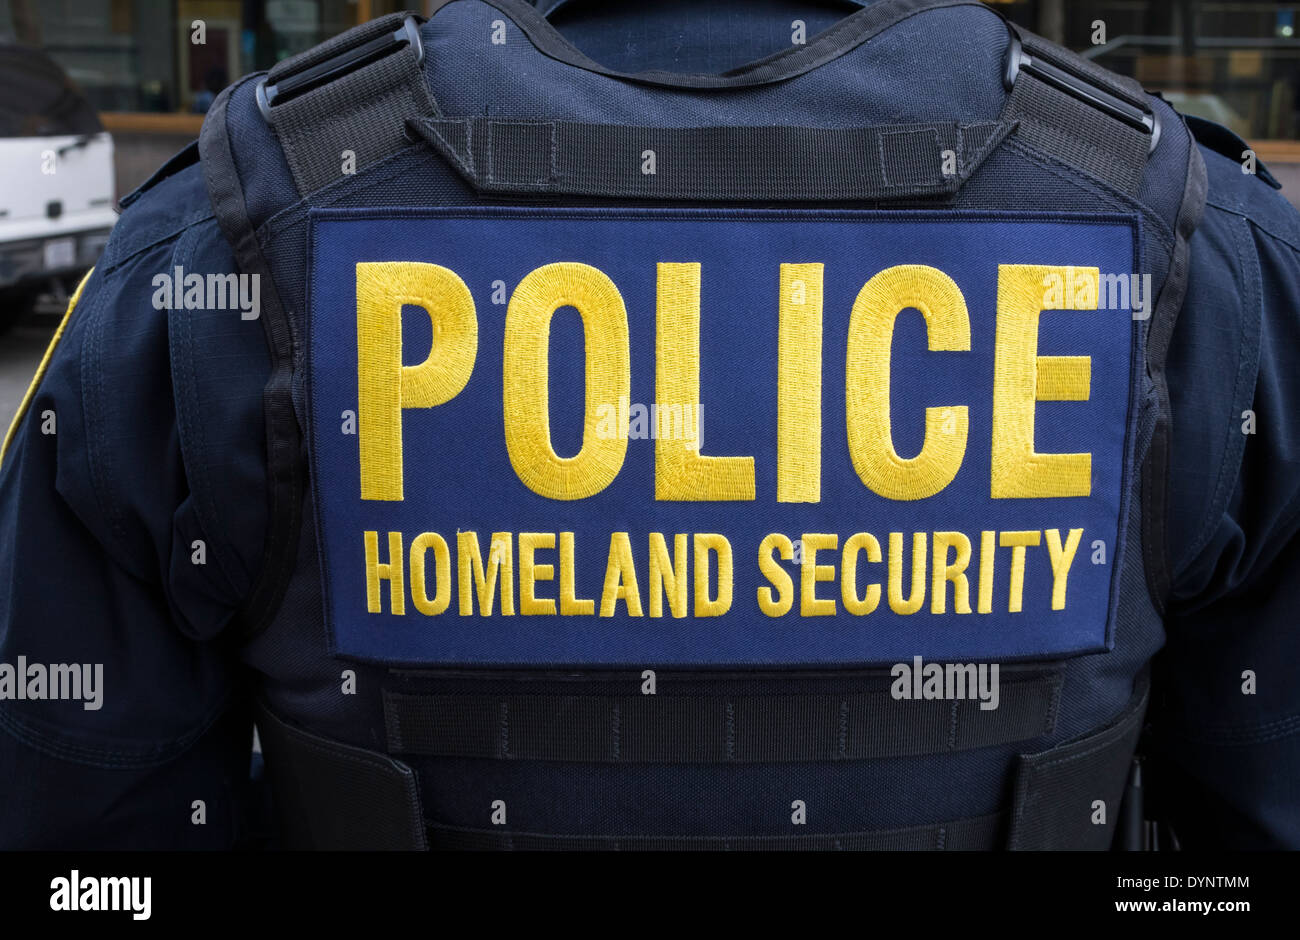 New York City police officer on Homeland Security duty - Stock Image